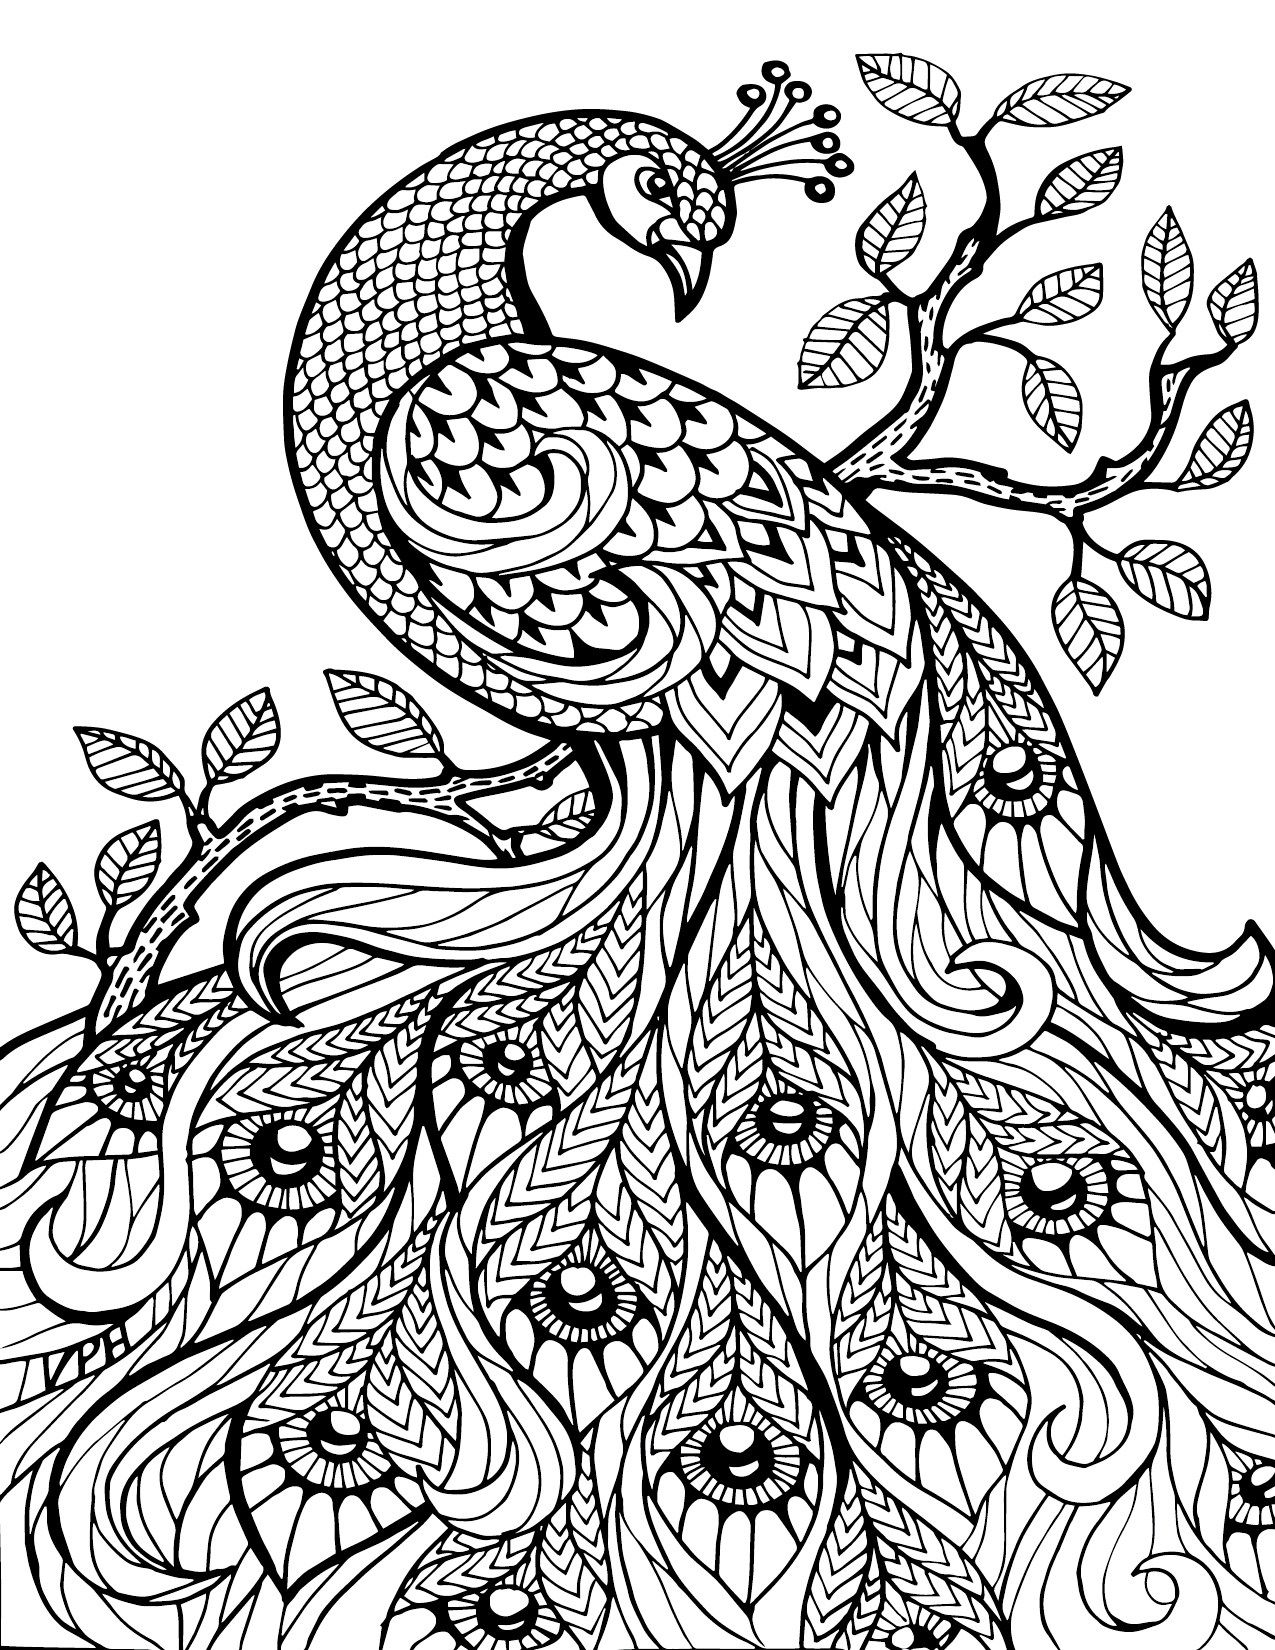 peacock coloring pages for adults adult coloring pages peacock 17274jpg 12751650 pixels pages coloring adults for peacock